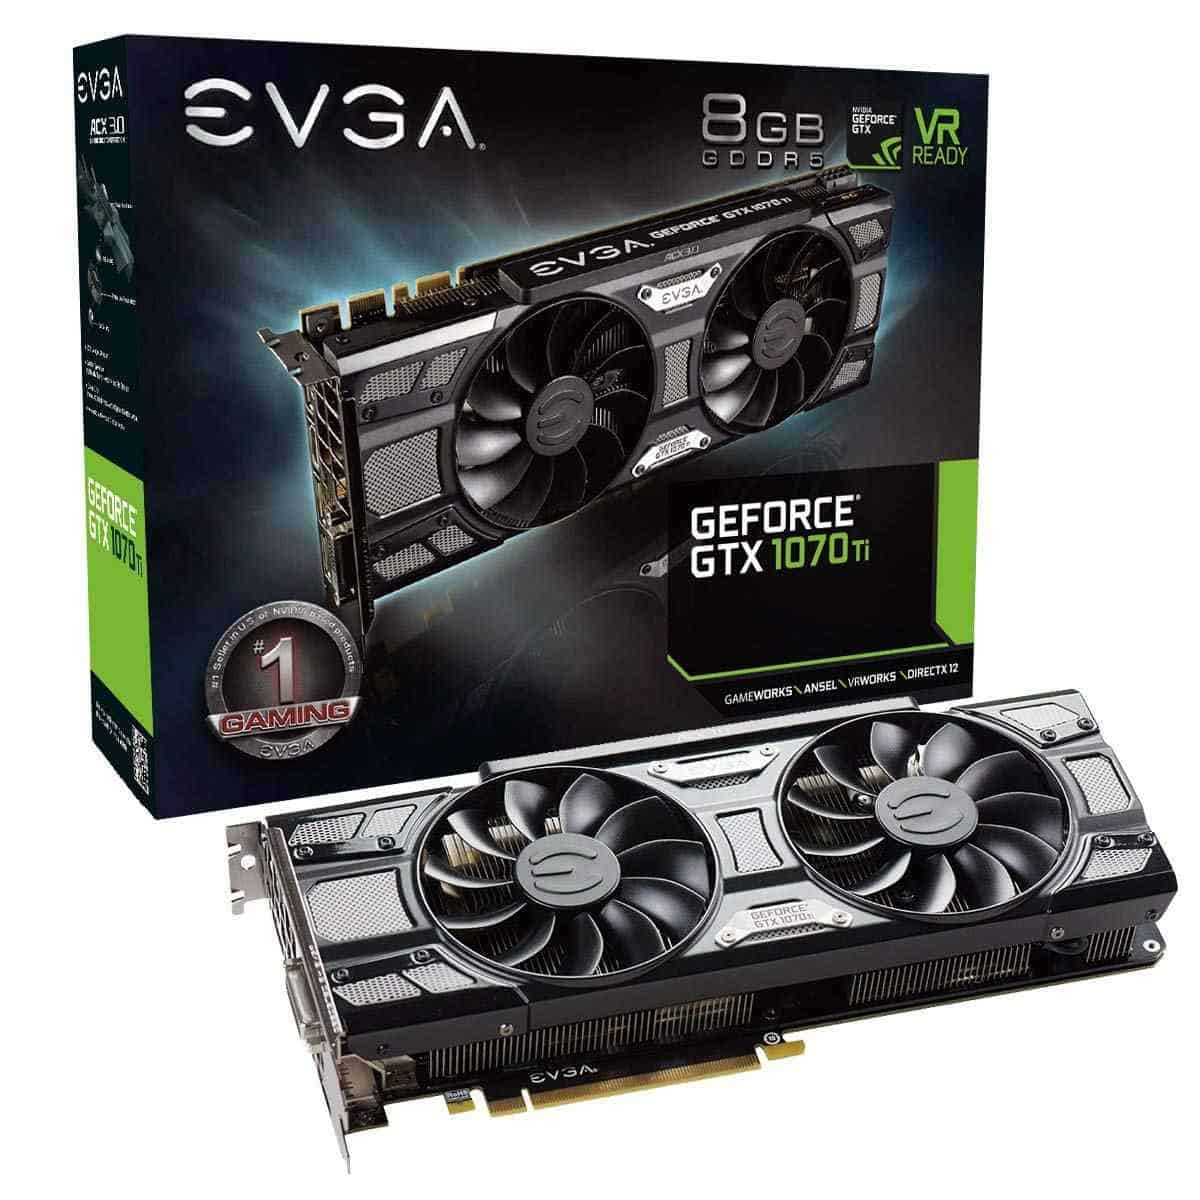 EVGA GTX 1070 Ti | Best Graphics Cards For Gaming